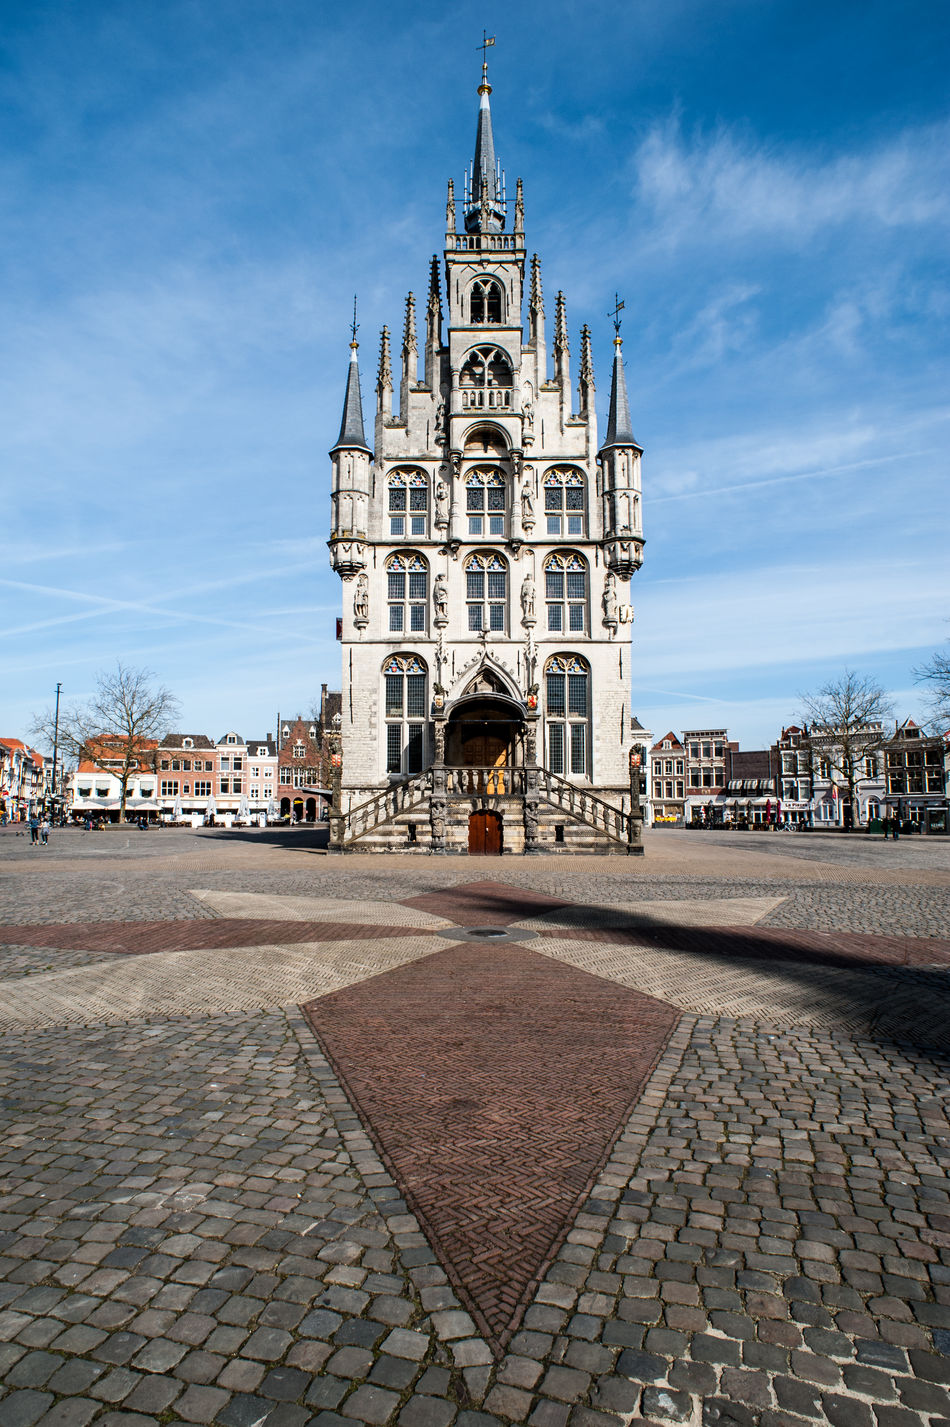 Gouda town hall Architecture Building Exterior Built Structure City City Clear Sky Day Gouda Holland Netherlands No People Outdoors Place Of Worship Sky Town Hall Town Square Tranquility Travel Destinations Urban Wideangle